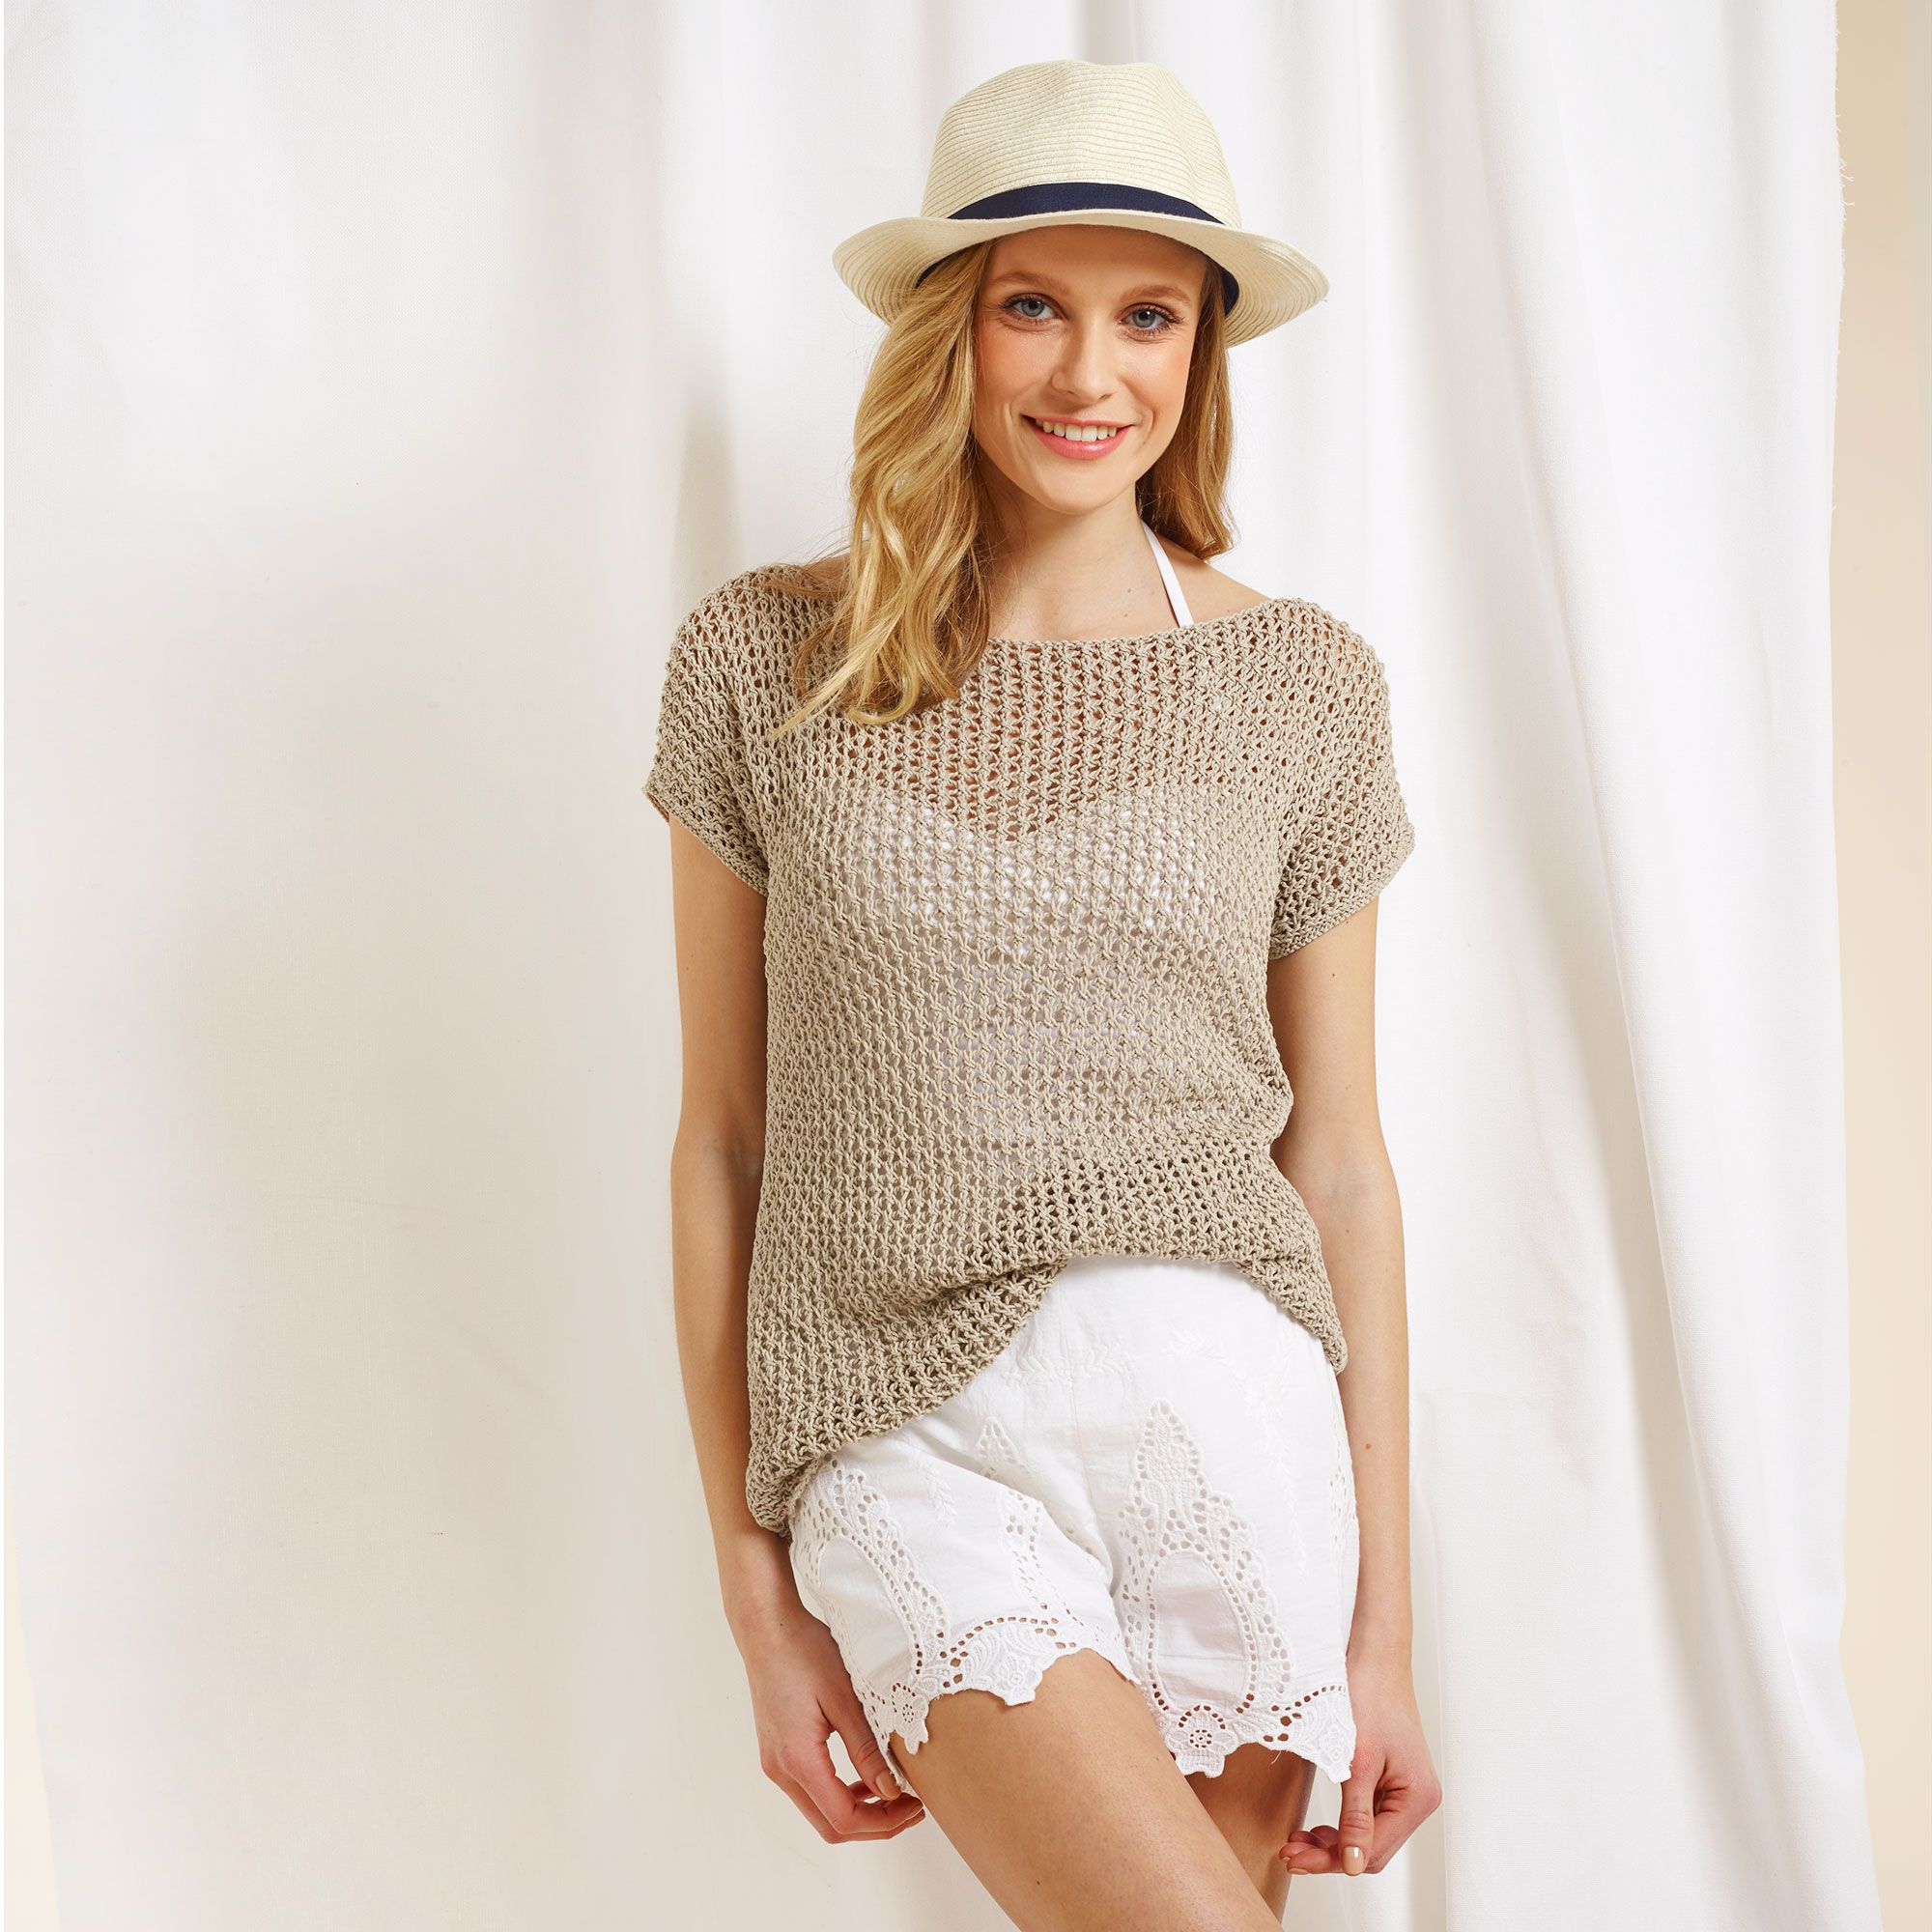 Free knitting patterns: Knit a lovely linen lace top for summer